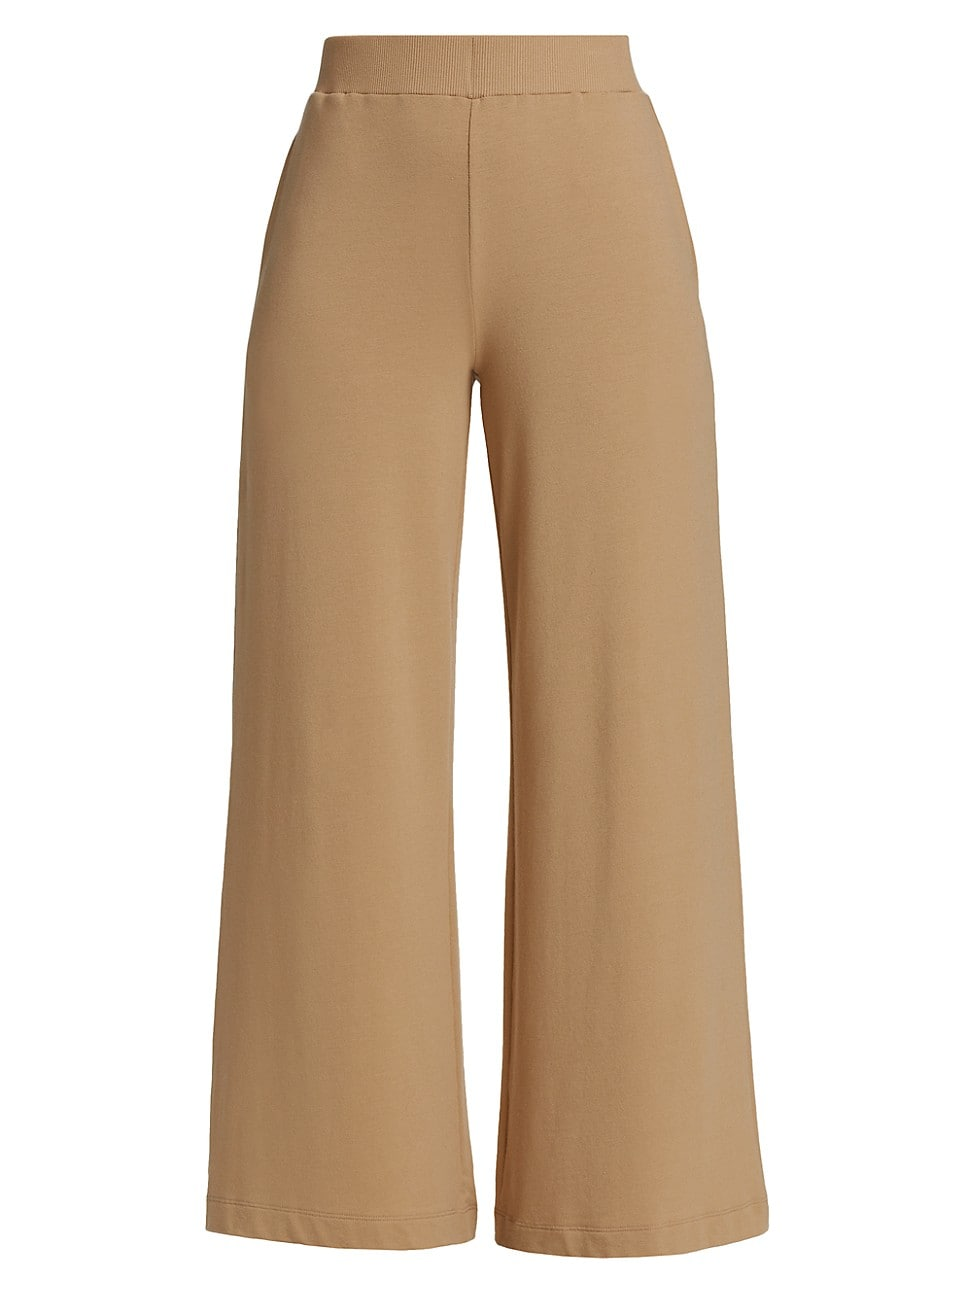 L AGENCE WOMEN'S THE CAMPBELL HIGH-RISE WIDE LEG PANTS